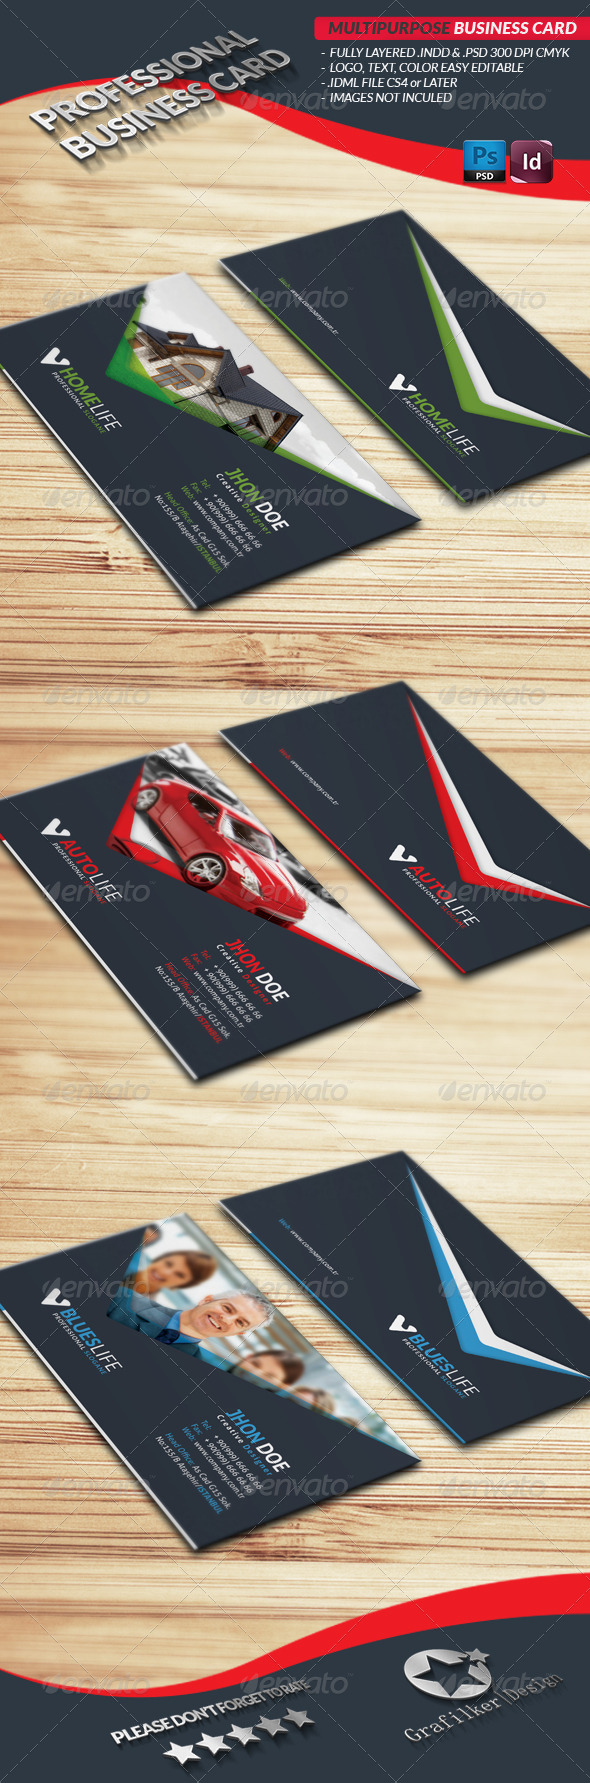 GraphicRiver Multipurpose Business Card 4030109